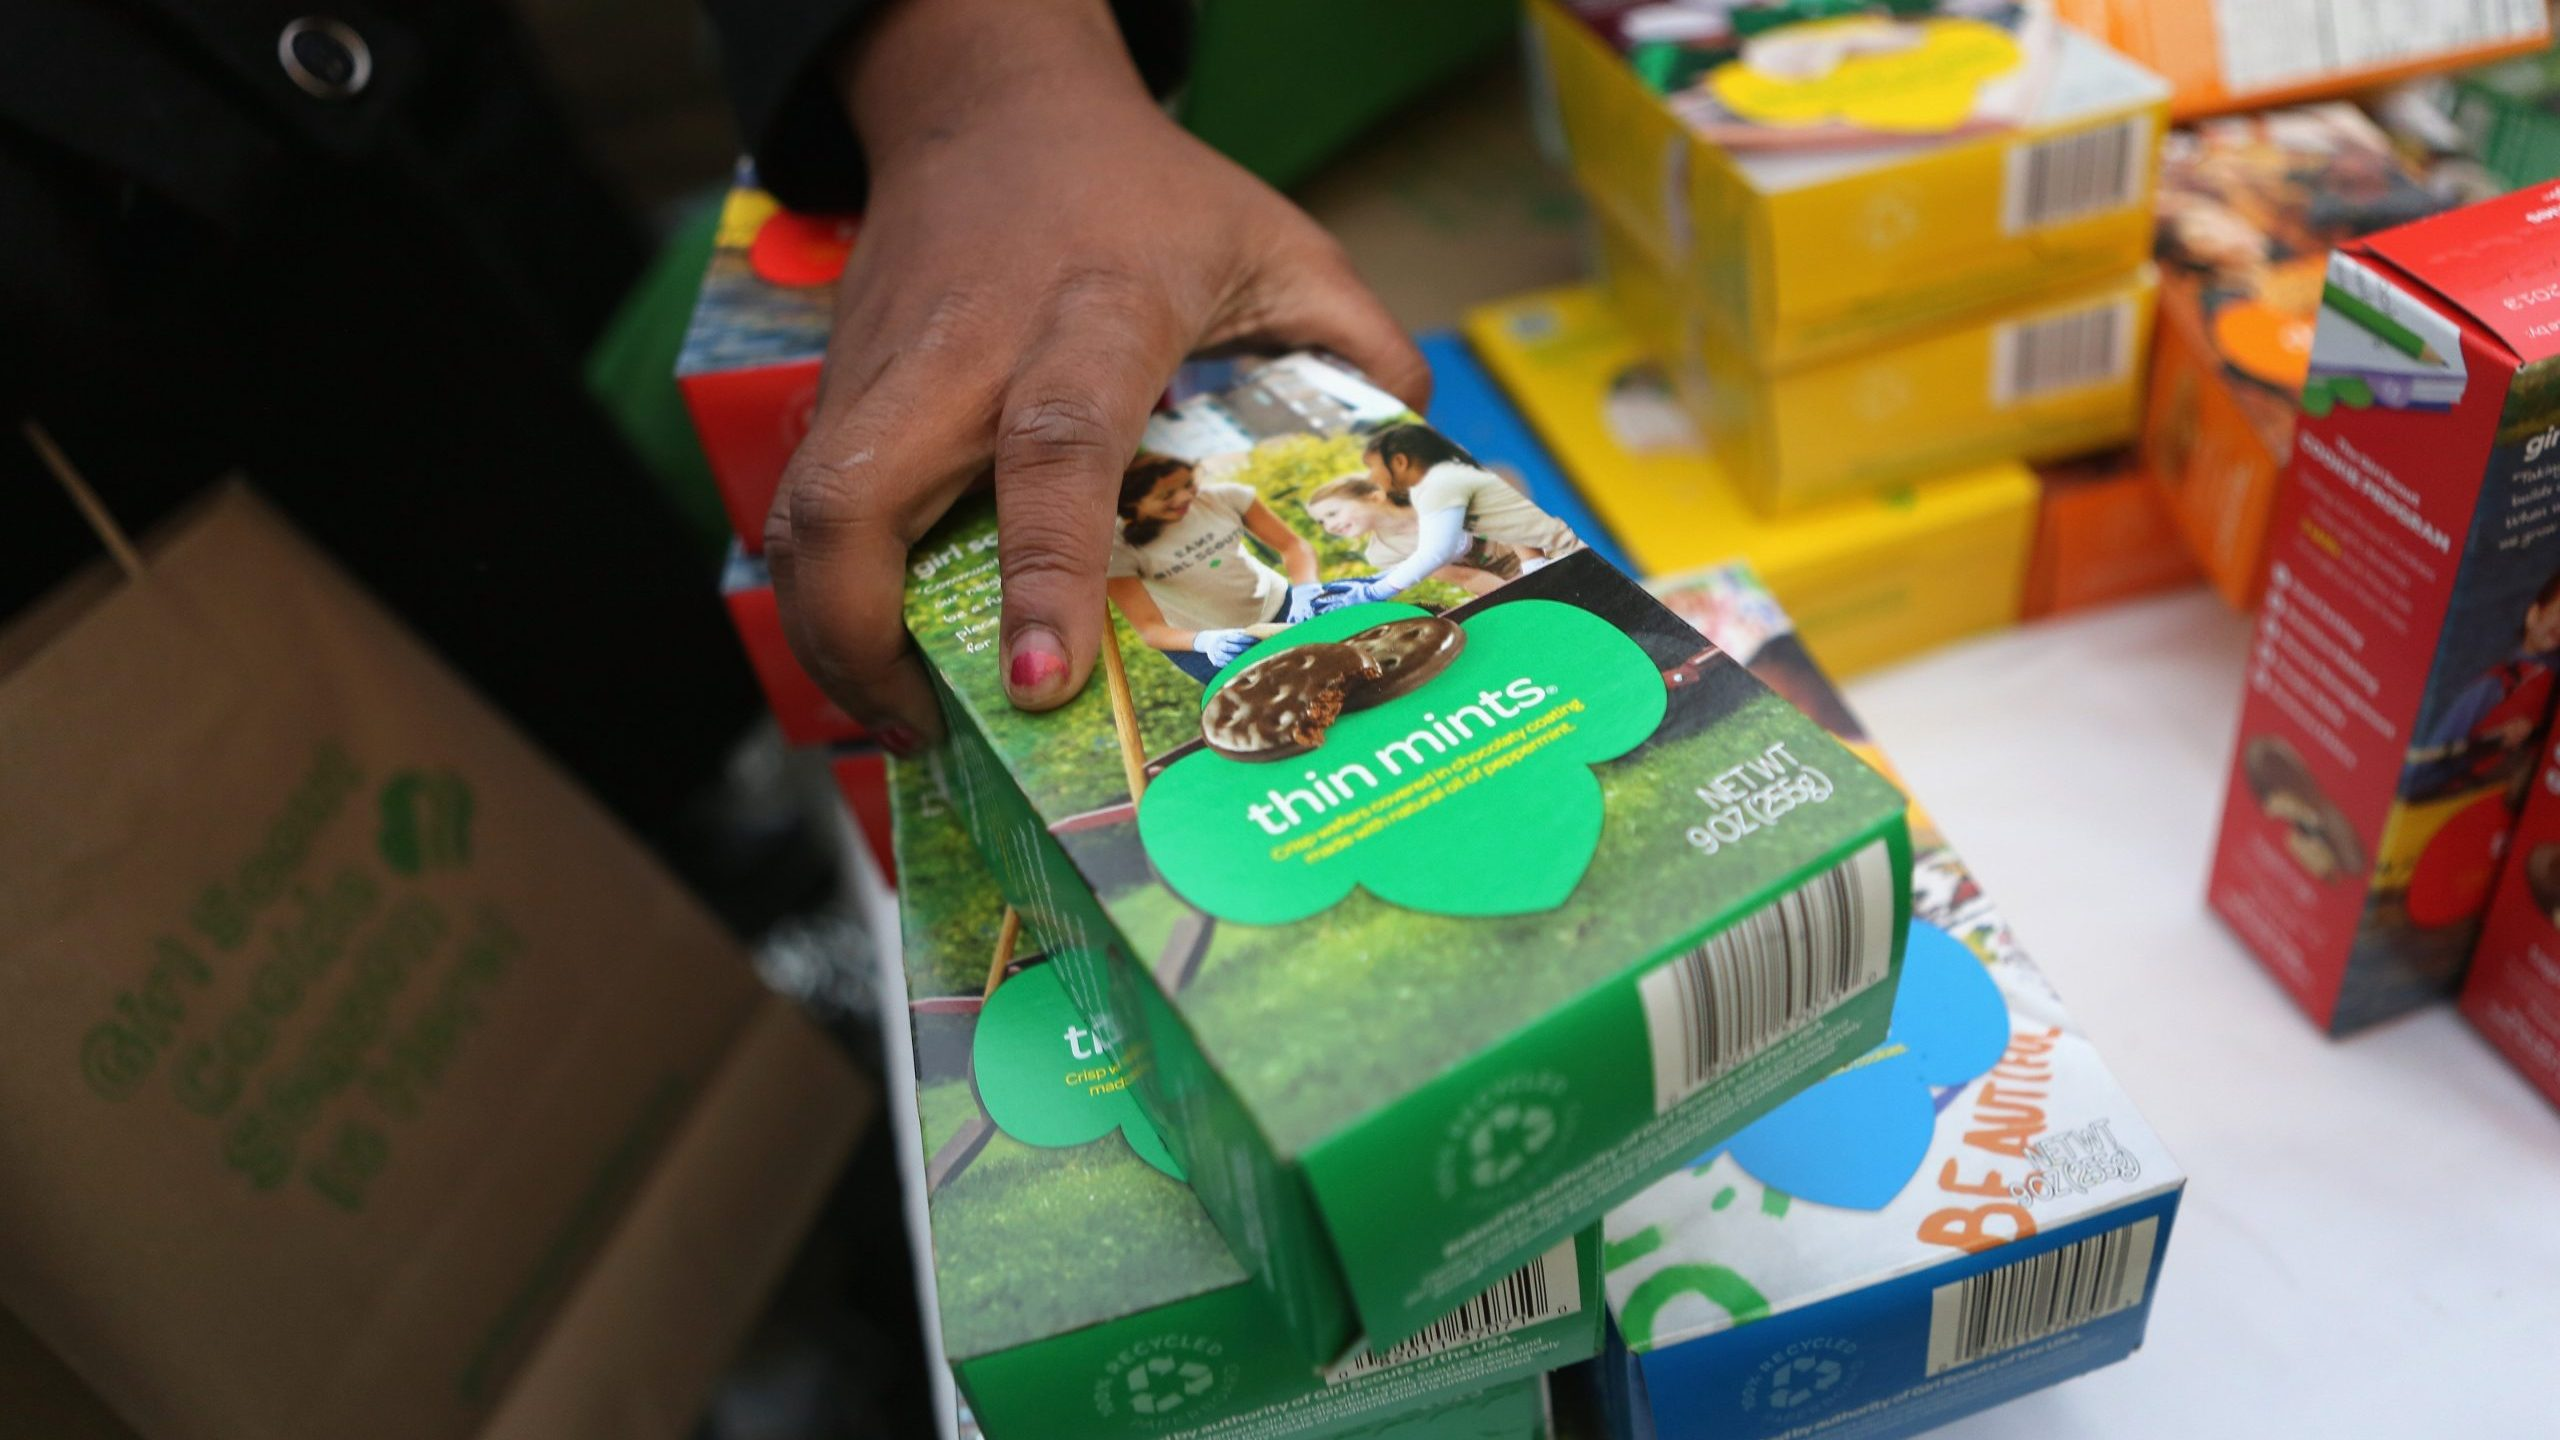 Girl Scouts sell cookies in New York City on Feb. 8, 2013 in New York City. (Credit: John Moore/Getty Images)